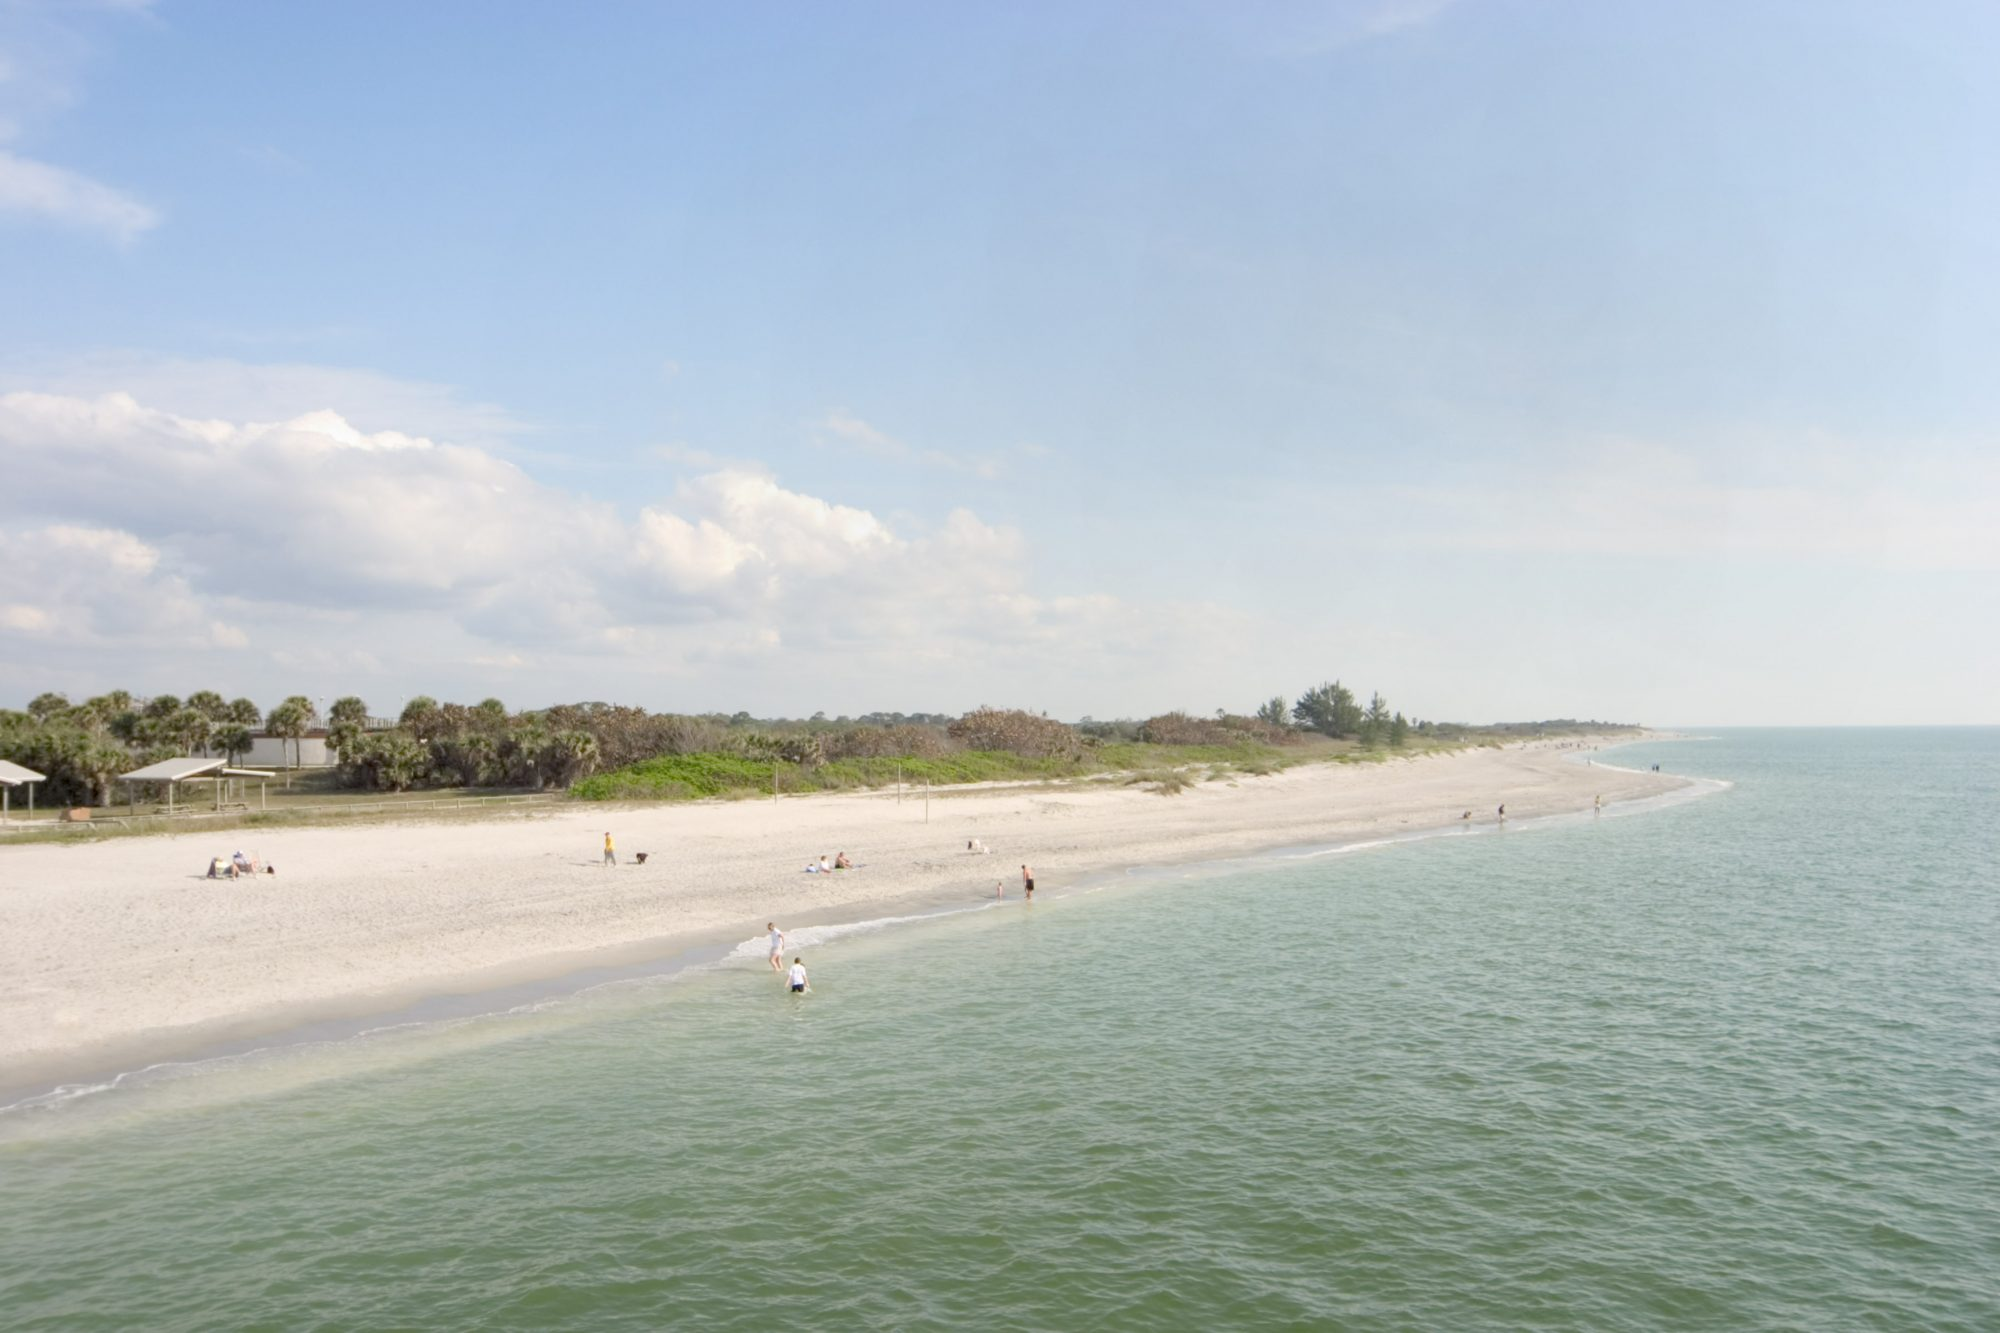 Coast of Gulf of Mexico from Venice Public Pier in Venice, Florida